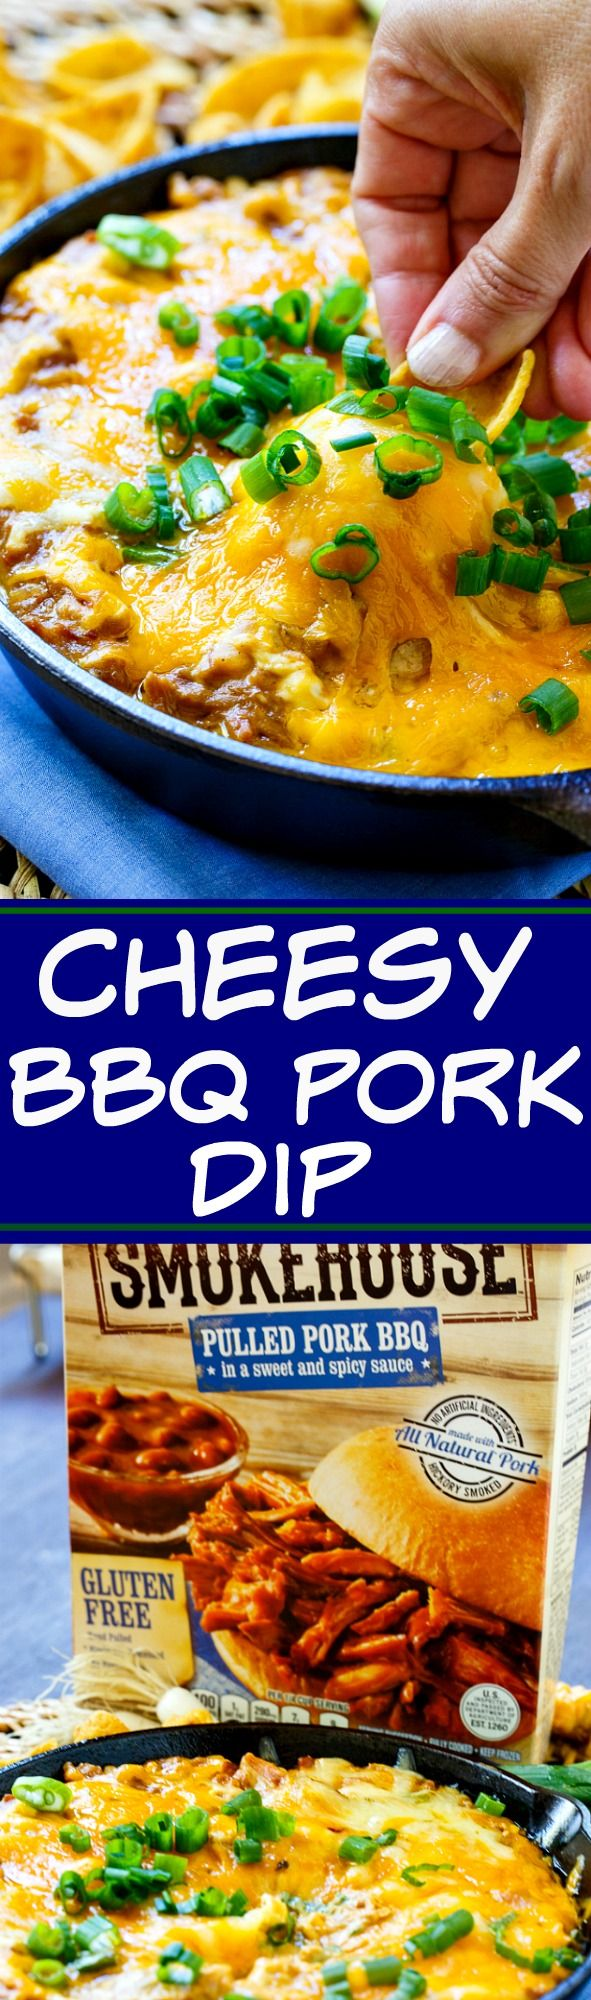 Cheesy BBQ Pork Dip is perfect for game day. So easy to make with @FarmRichSnacks Smokehouse BBQ Pulled Pork #ad